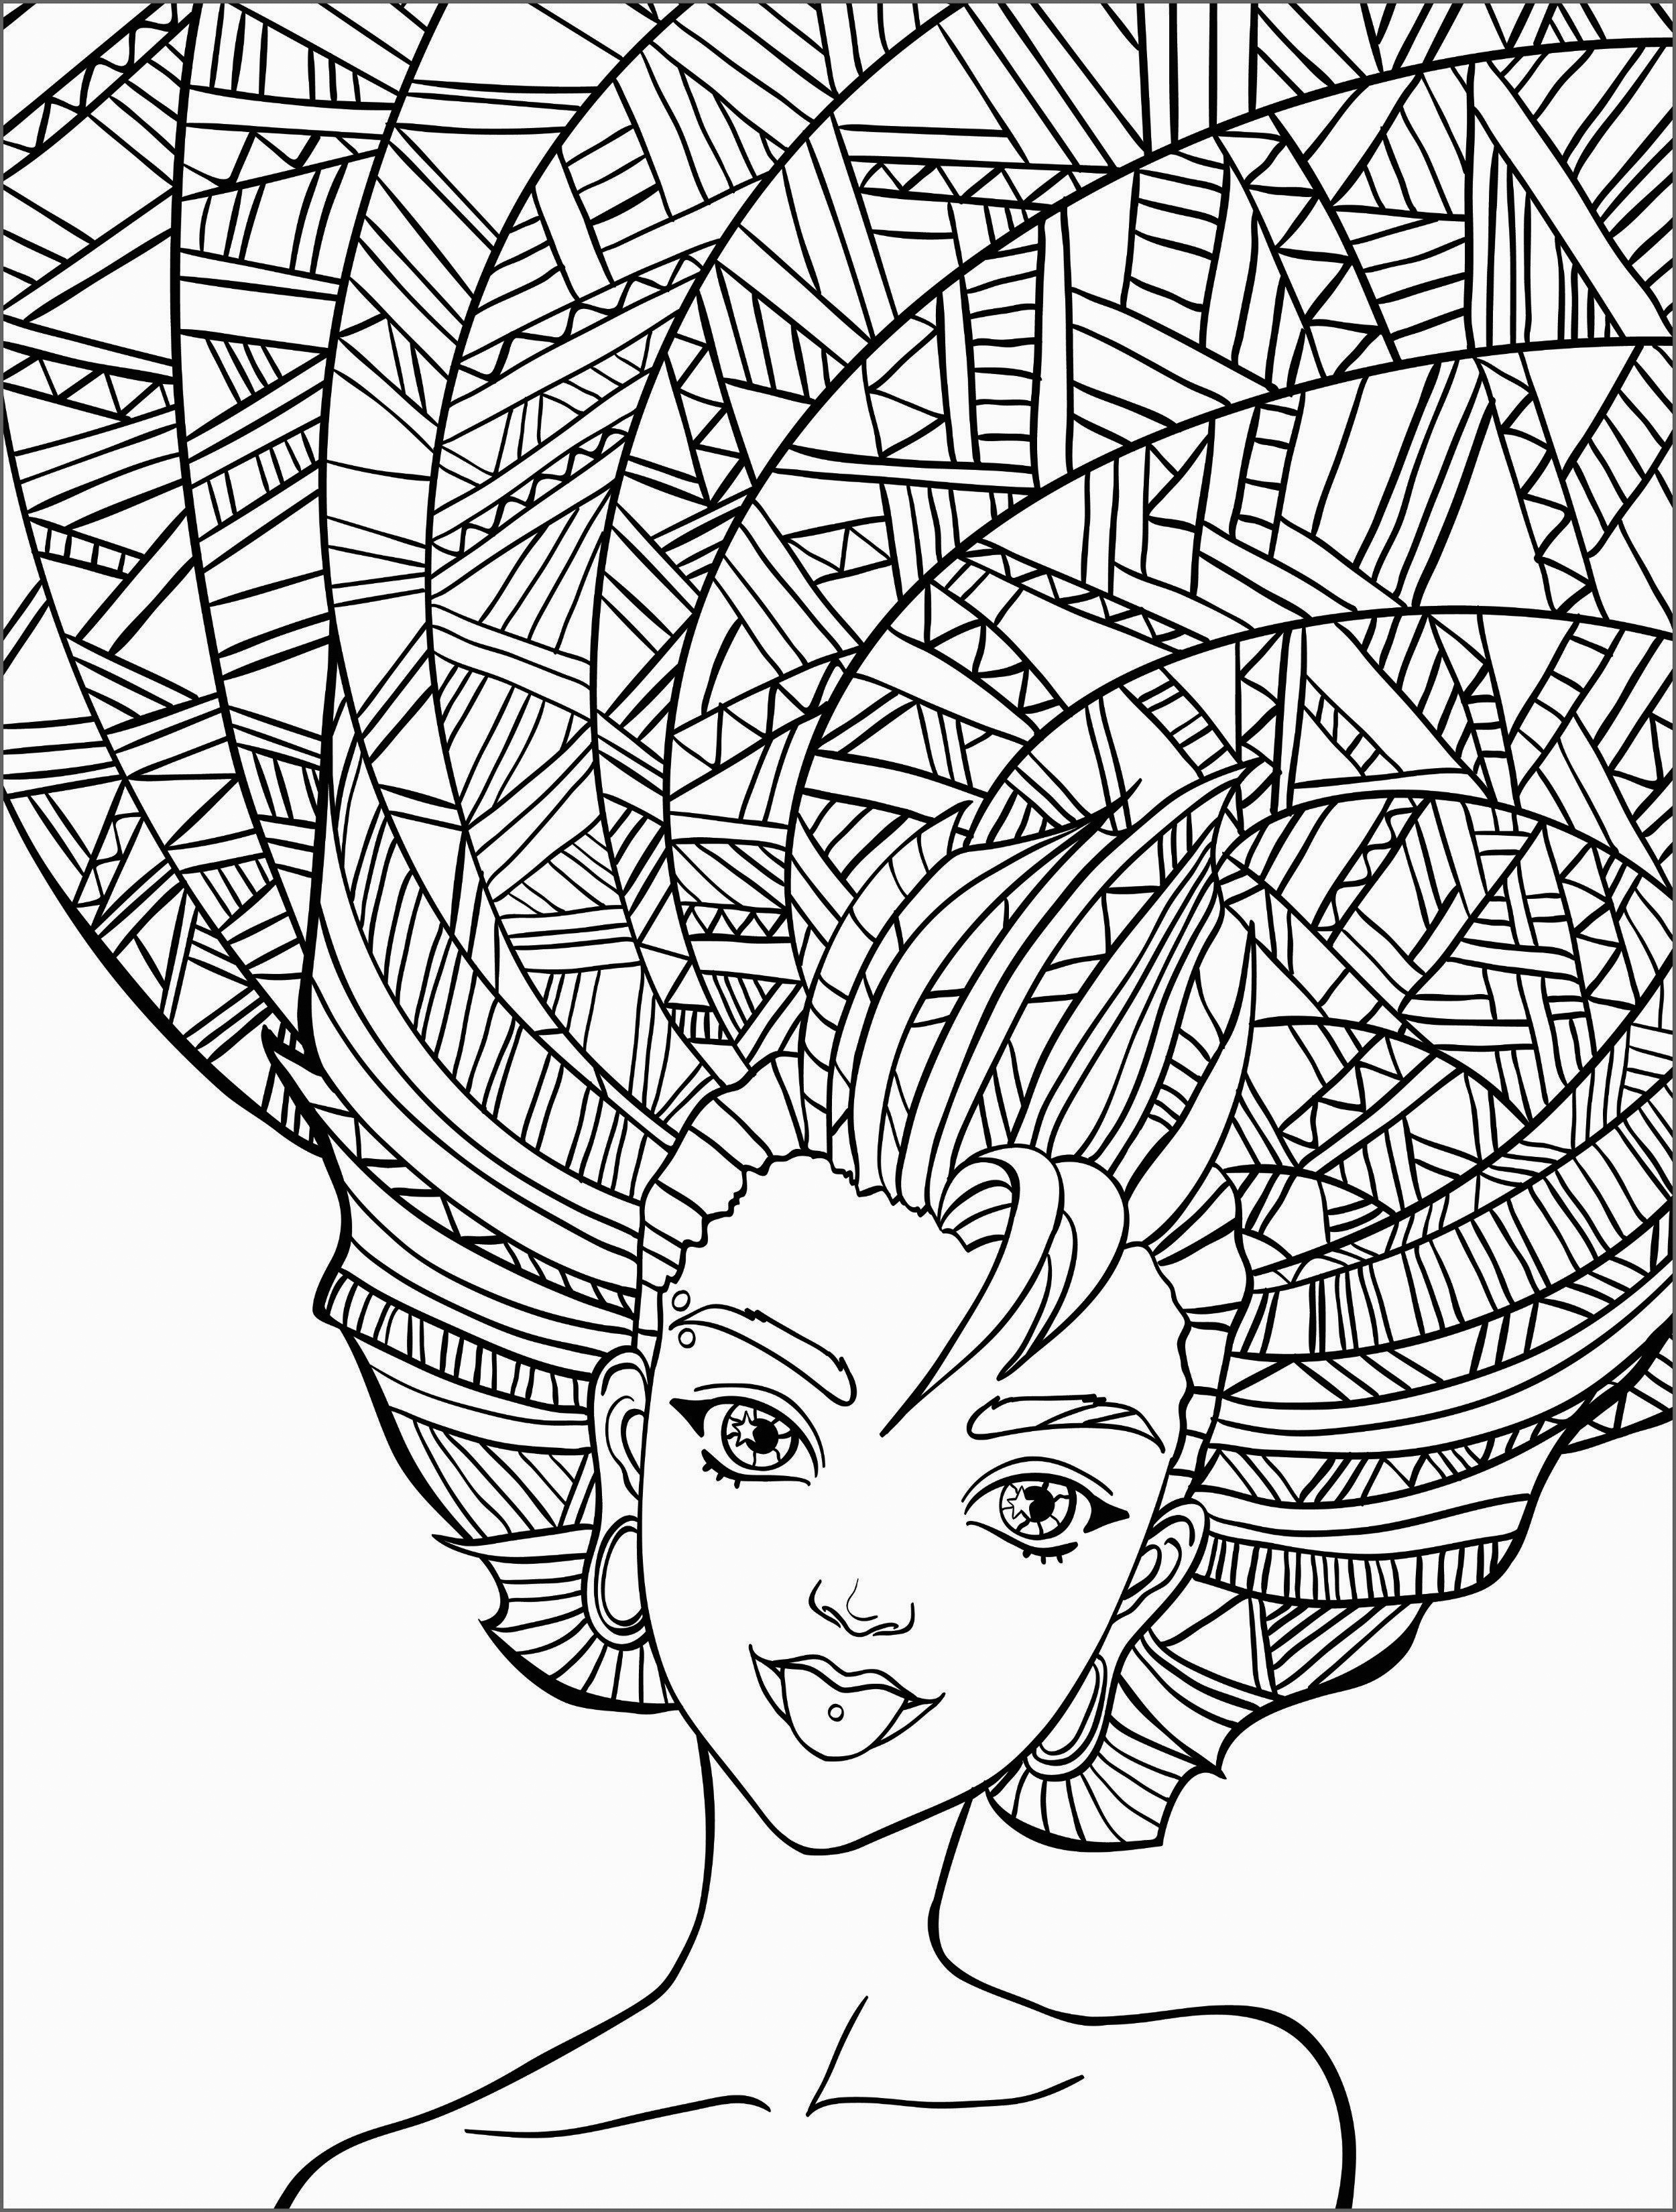 adult coloring pages free images like this one intended for adults to color can free adult coloring pages